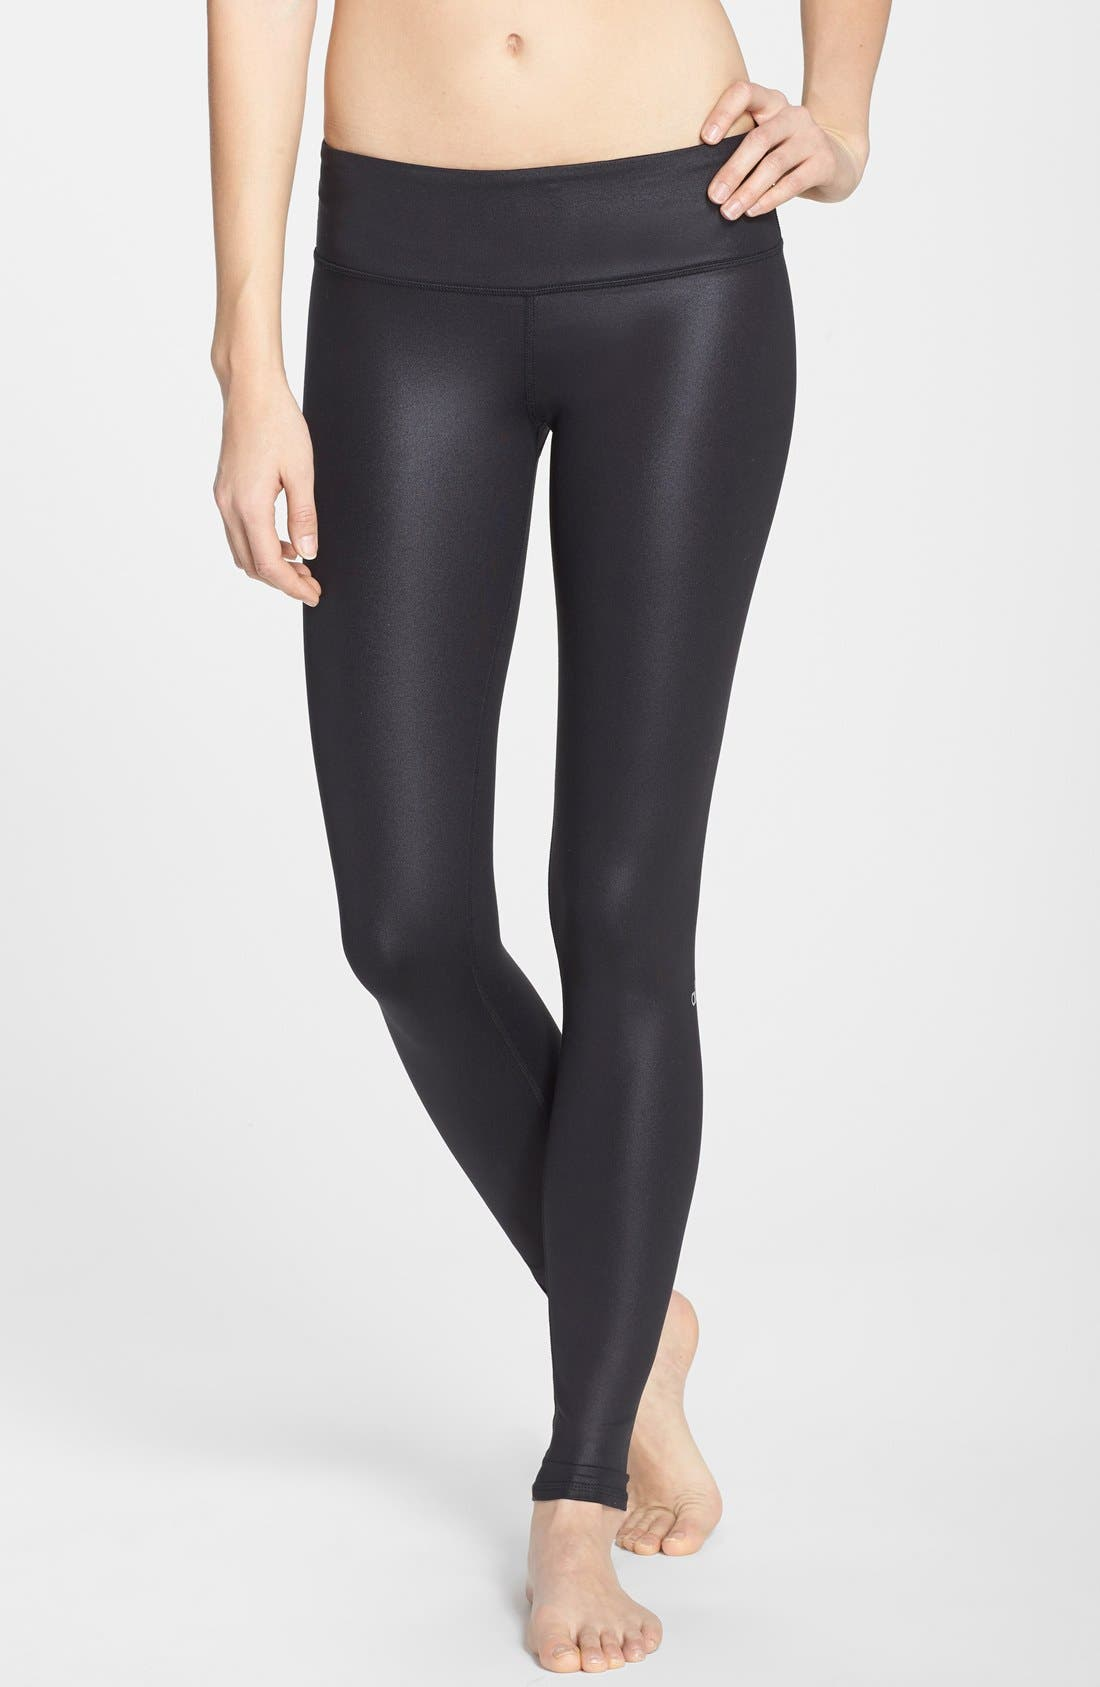 'Airbrushed' Leggings,                             Main thumbnail 1, color,                             001